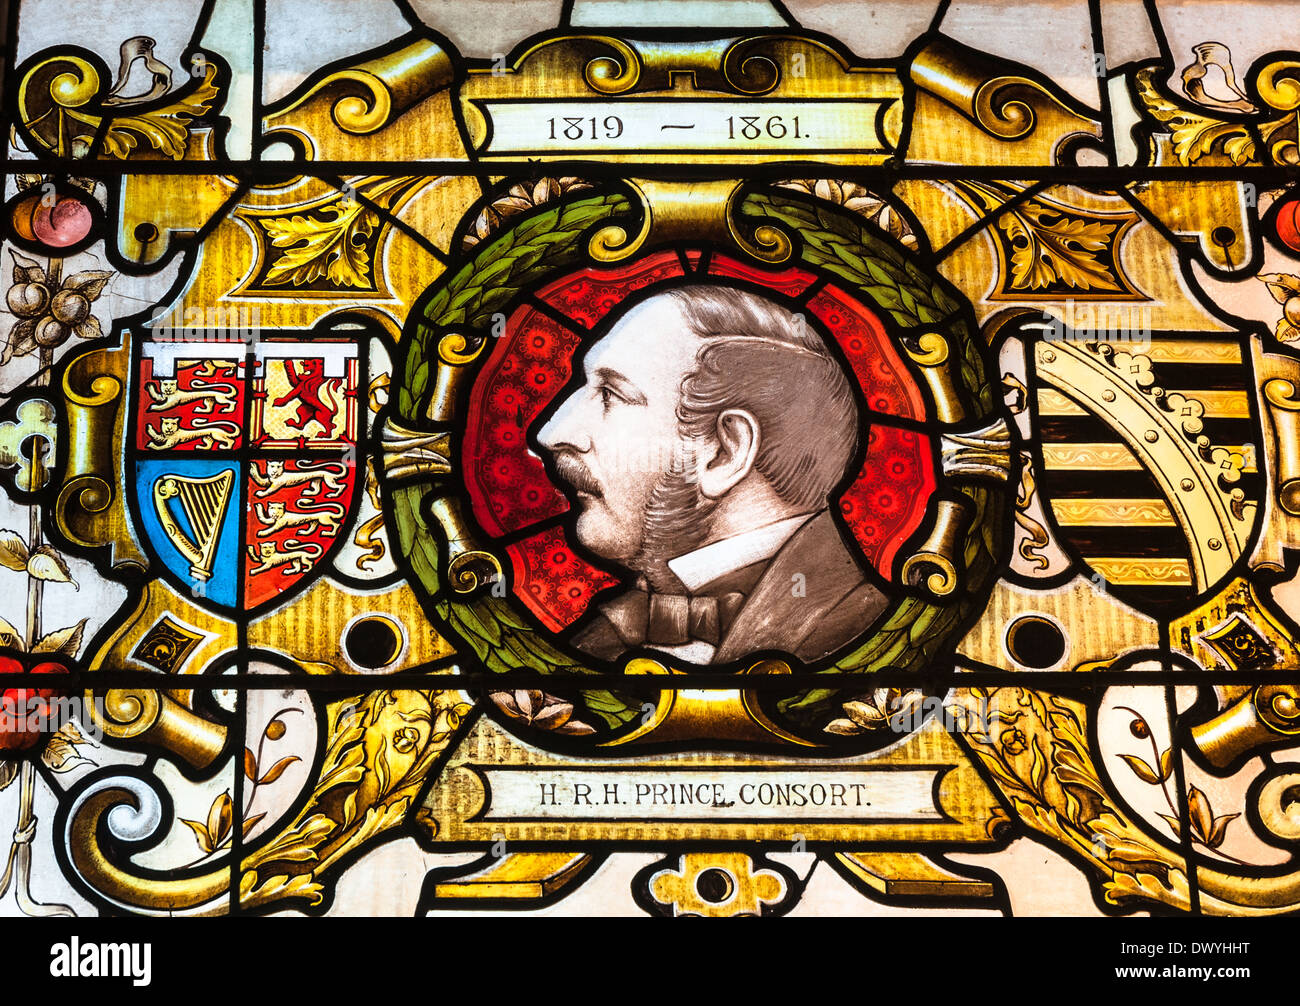 Prince Albert of Saxe-Coburg and Gotha portrait on stained glass. Stock Photo